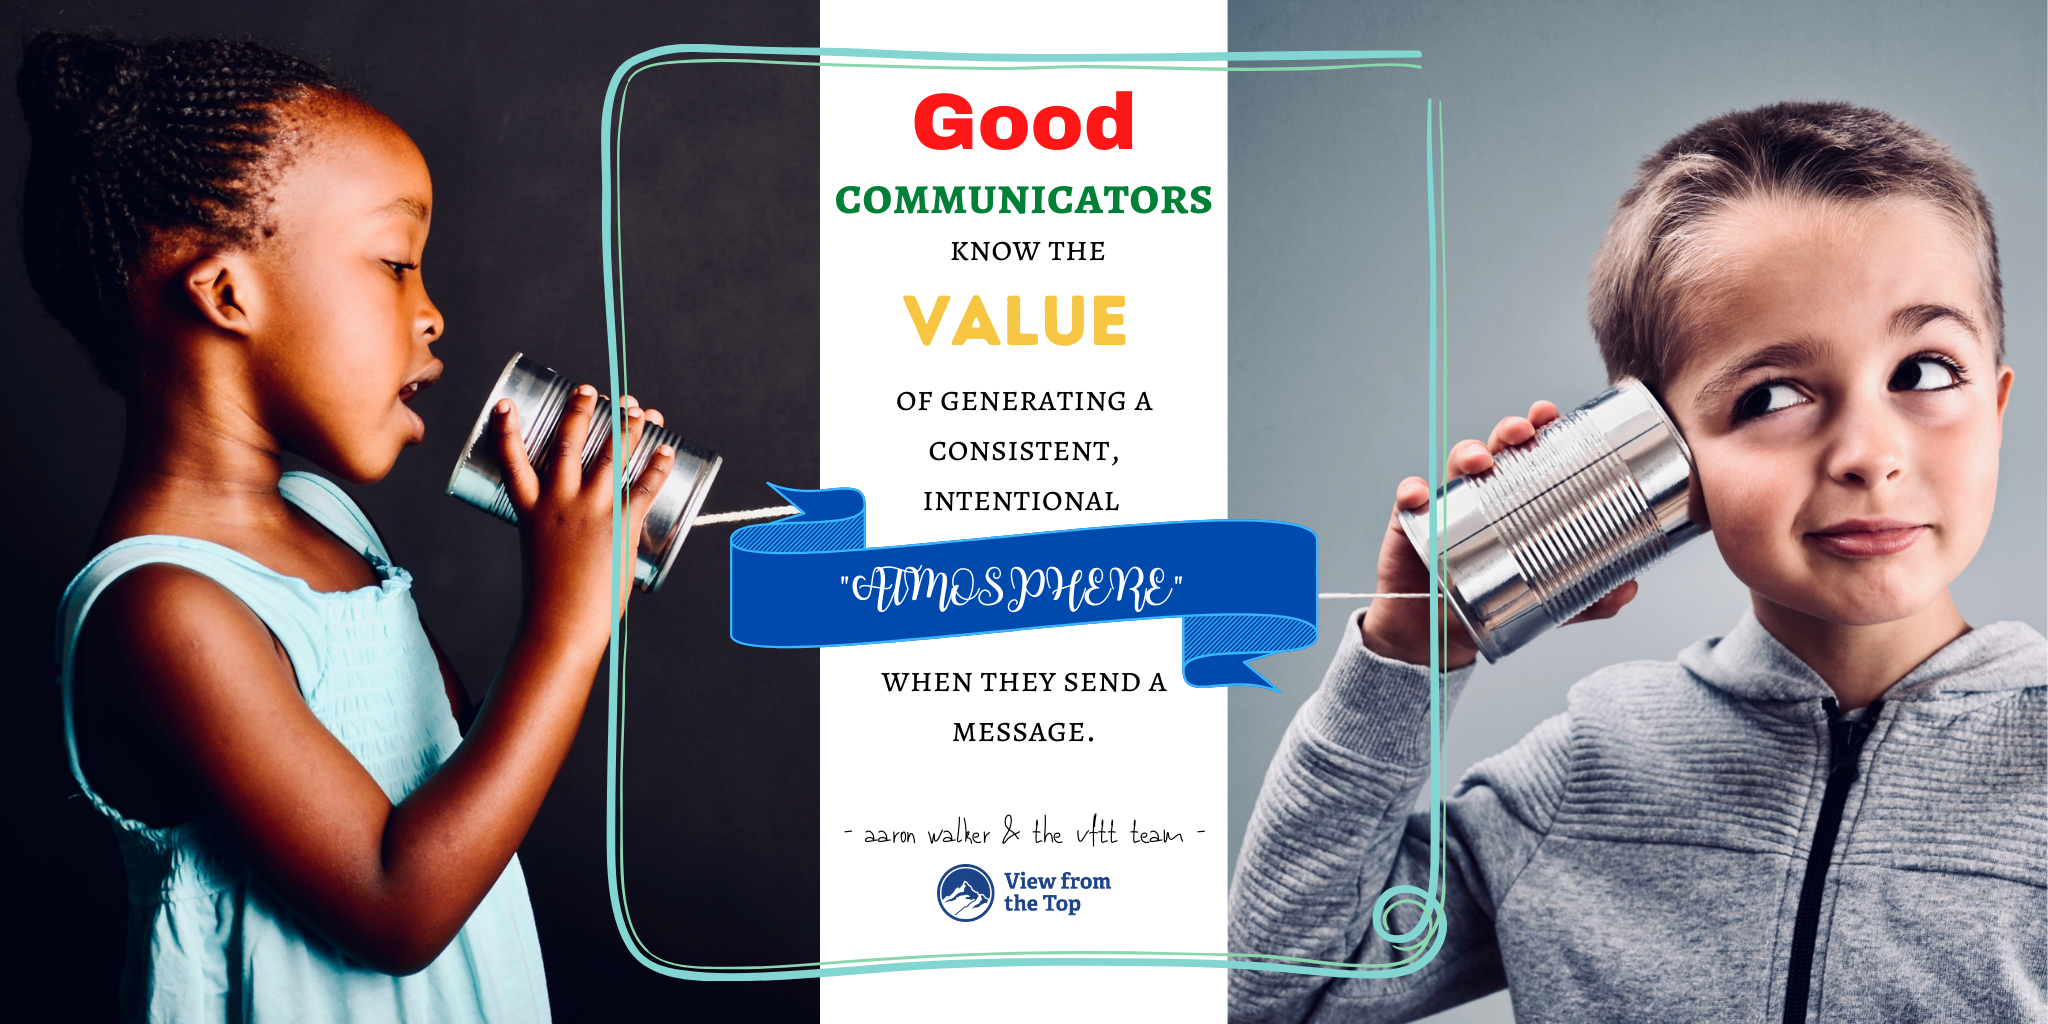 """Good communicators know the value of generating a consistent, intentional """"atmosphere"""" when they send a message."""